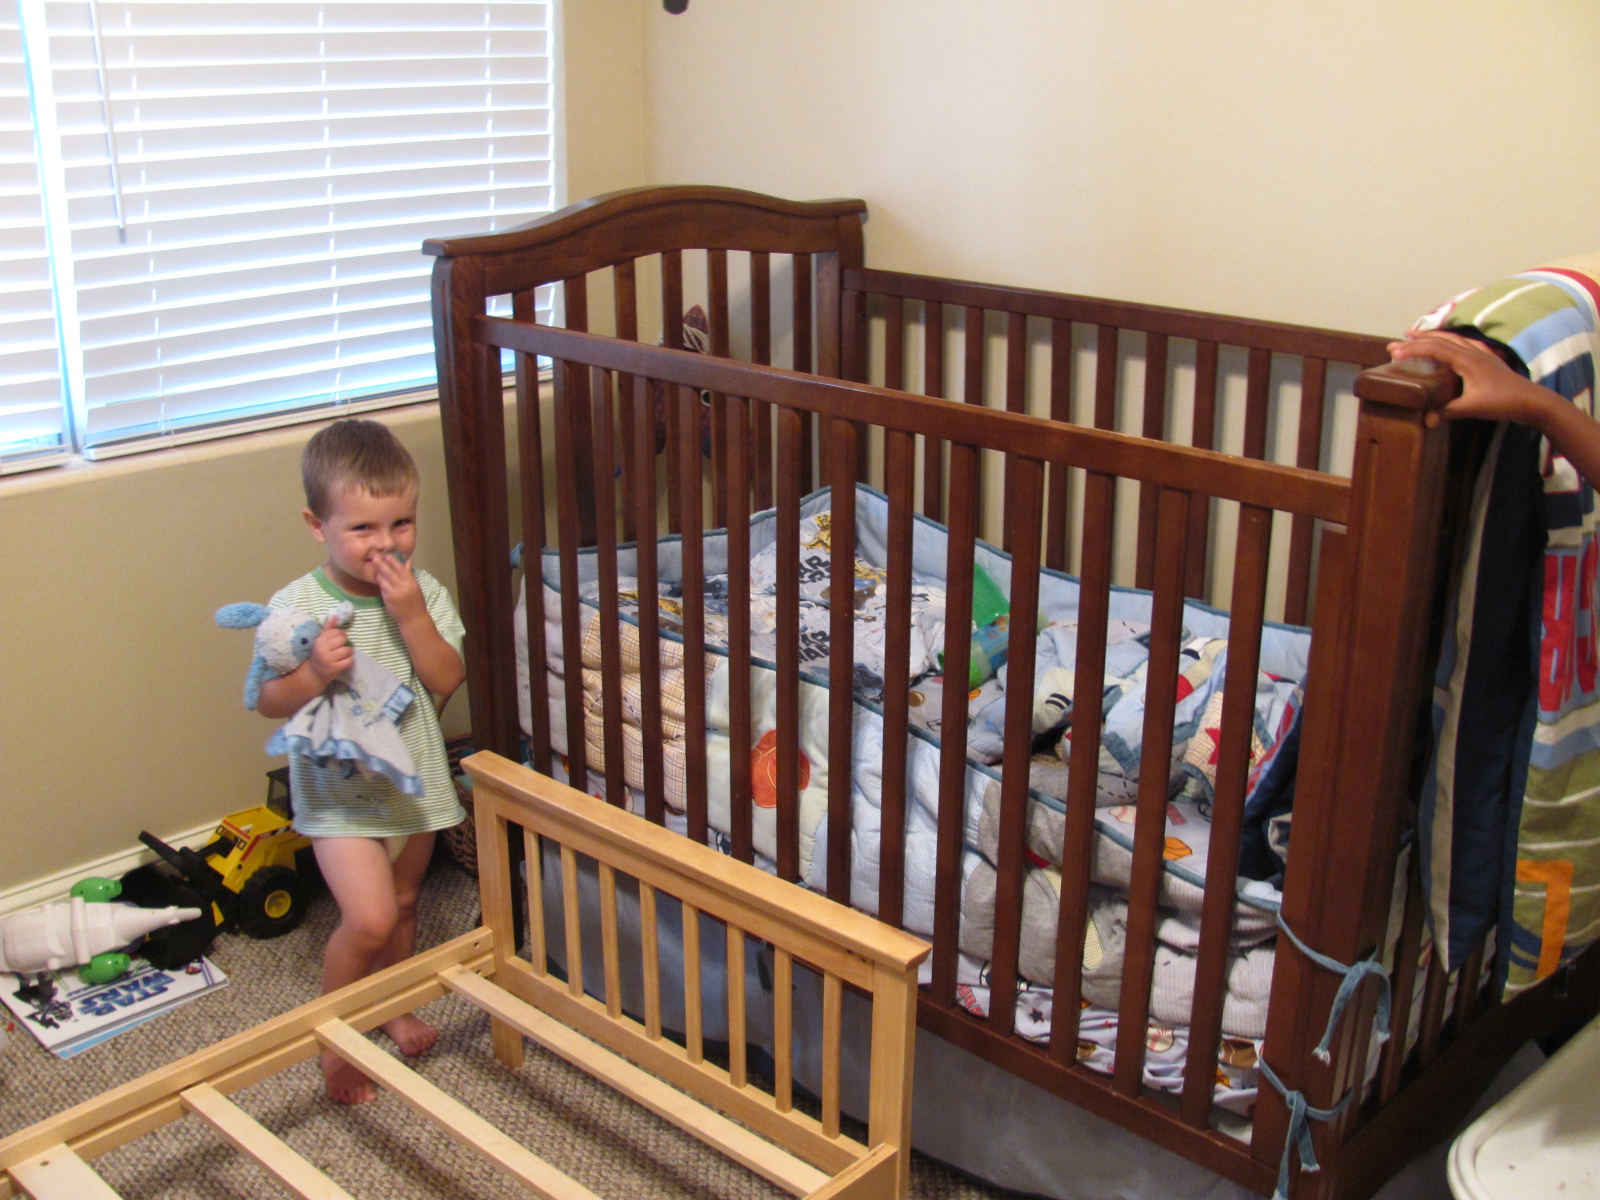 Baby bed for 2 year old - Getting The New Bed Set Up